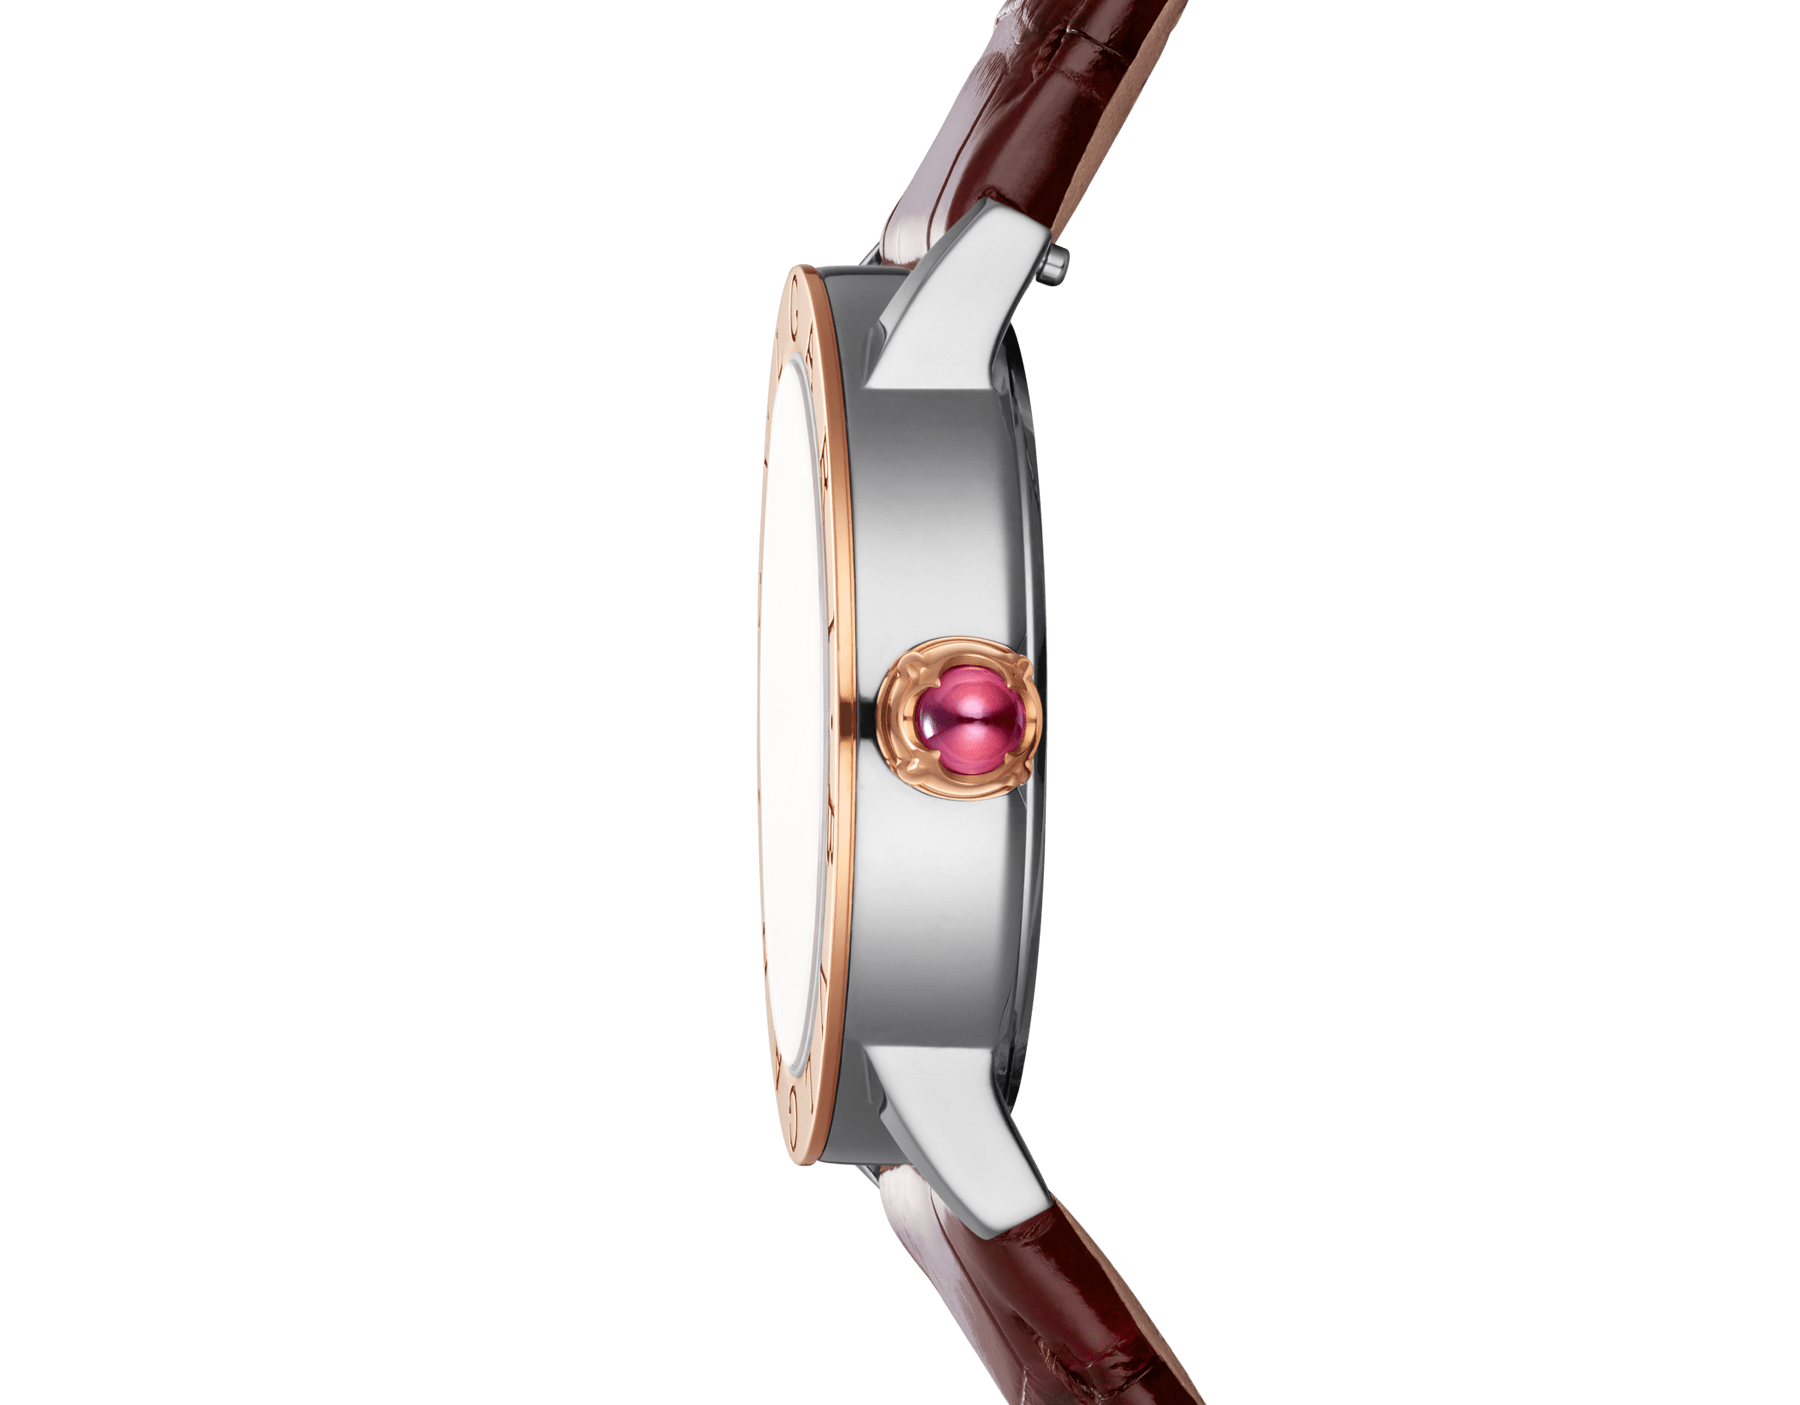 BVLGARI BVLGARI watch with stainless steel case, 18 kt rose gold bezel, brown satiné soleil lacquered dial, golden diamond indexes and shiny dark brown alligator bracelet 102742 image 3